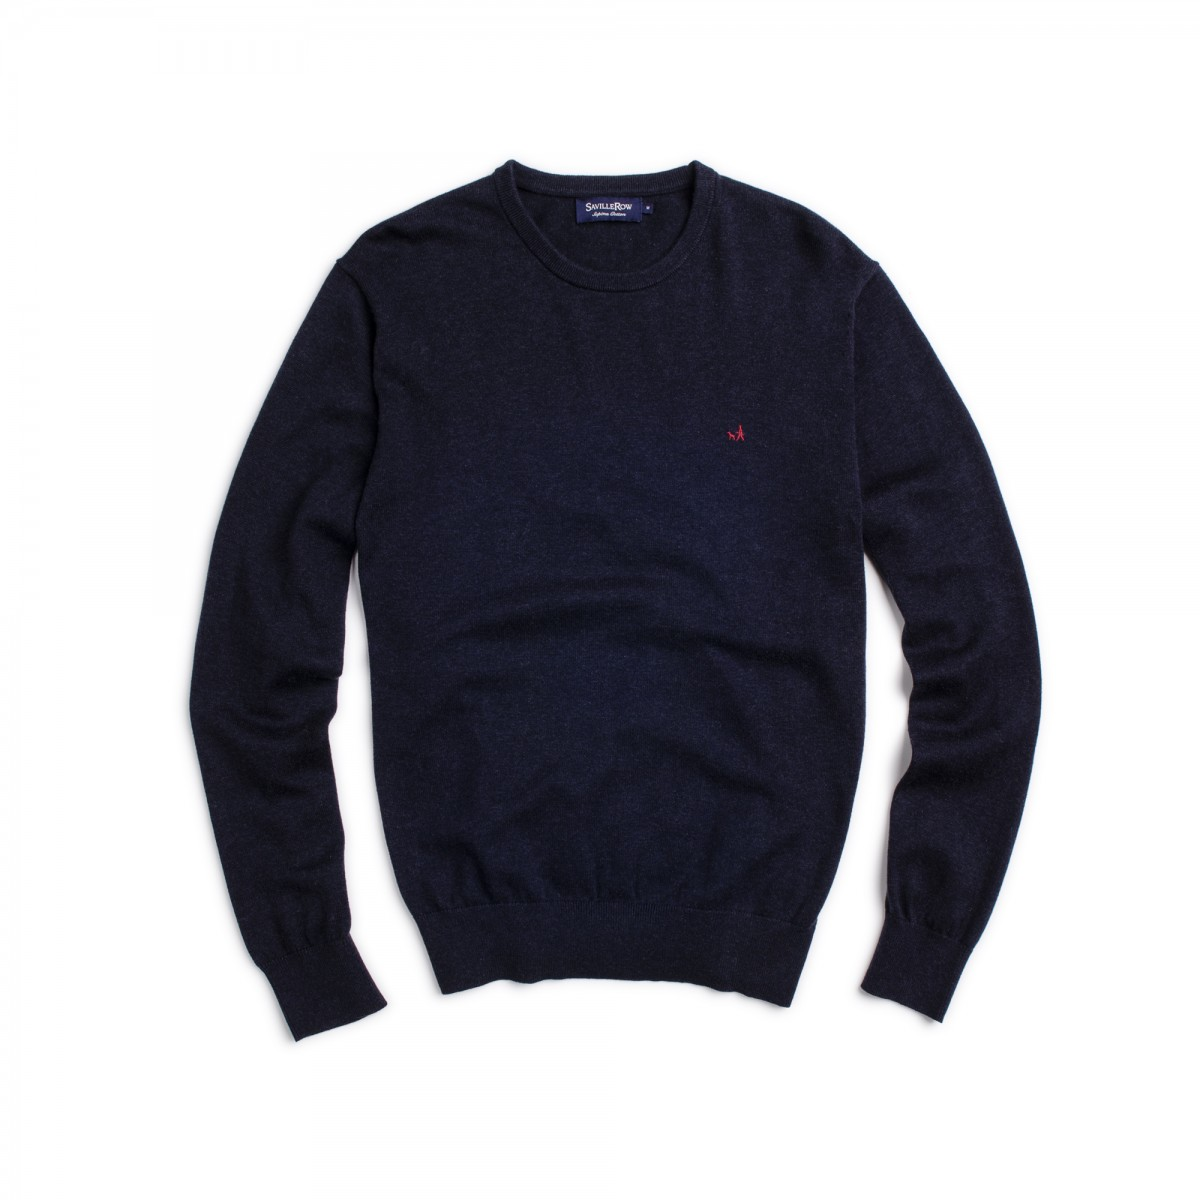 Sweater Clasico Cuello Crew Manga Larga